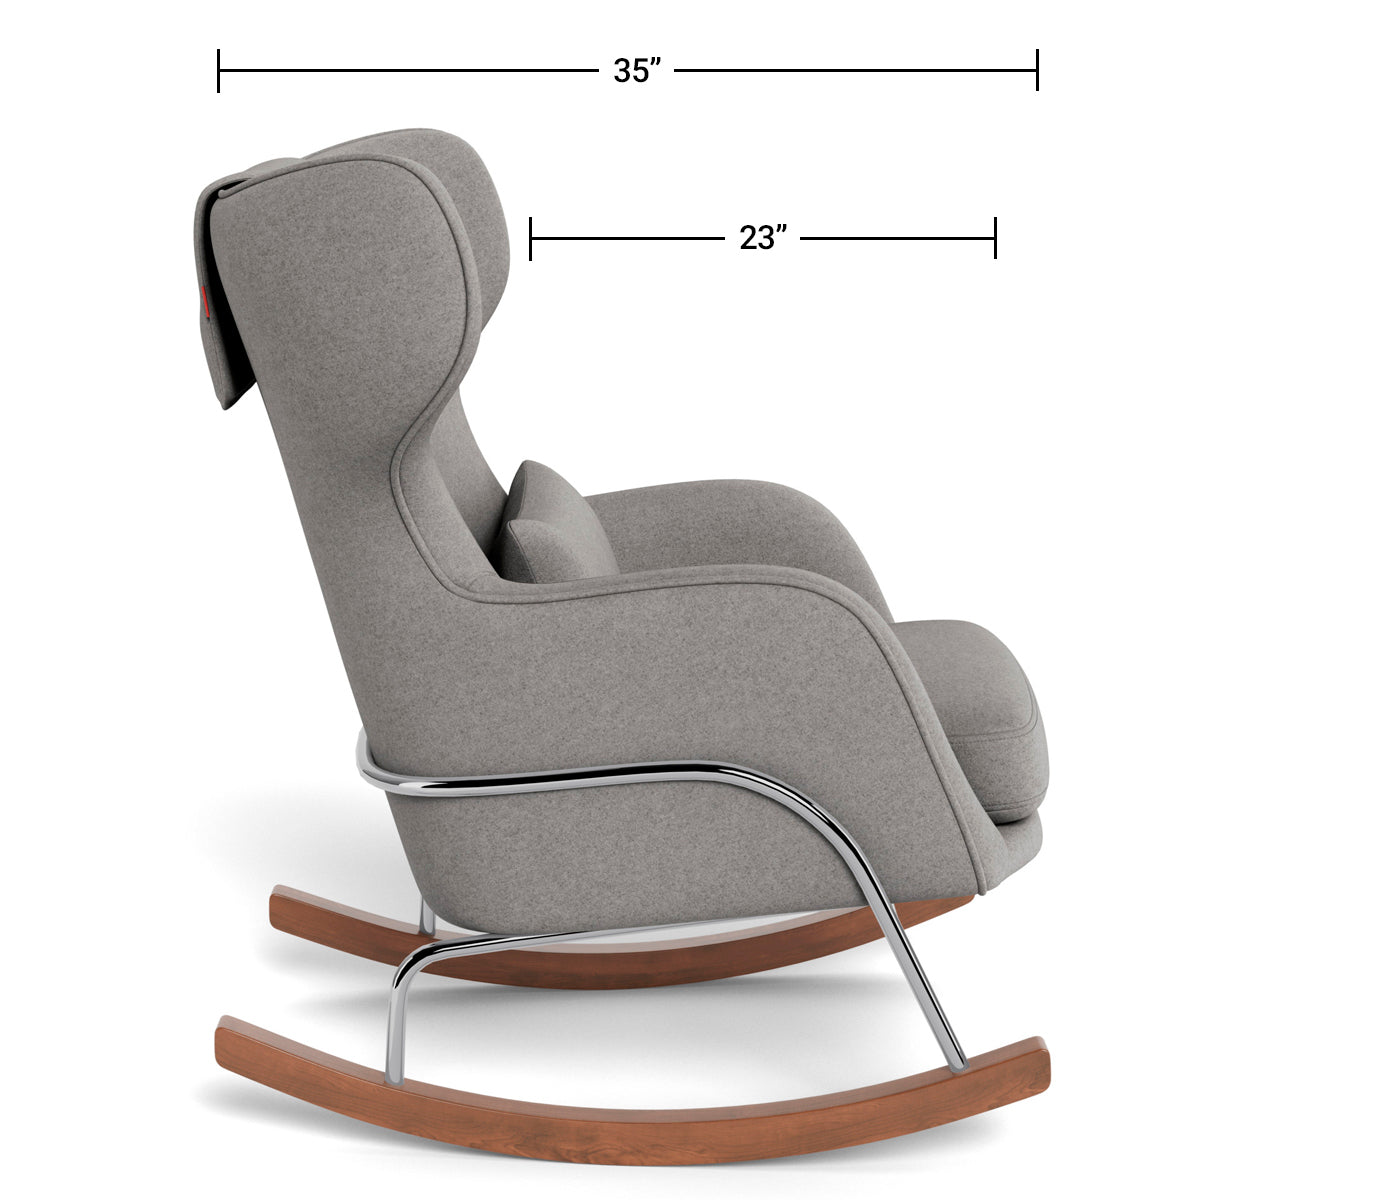 Modern Nursery Rocking Chair - Grand Jackson Rocker Dimensions Side View